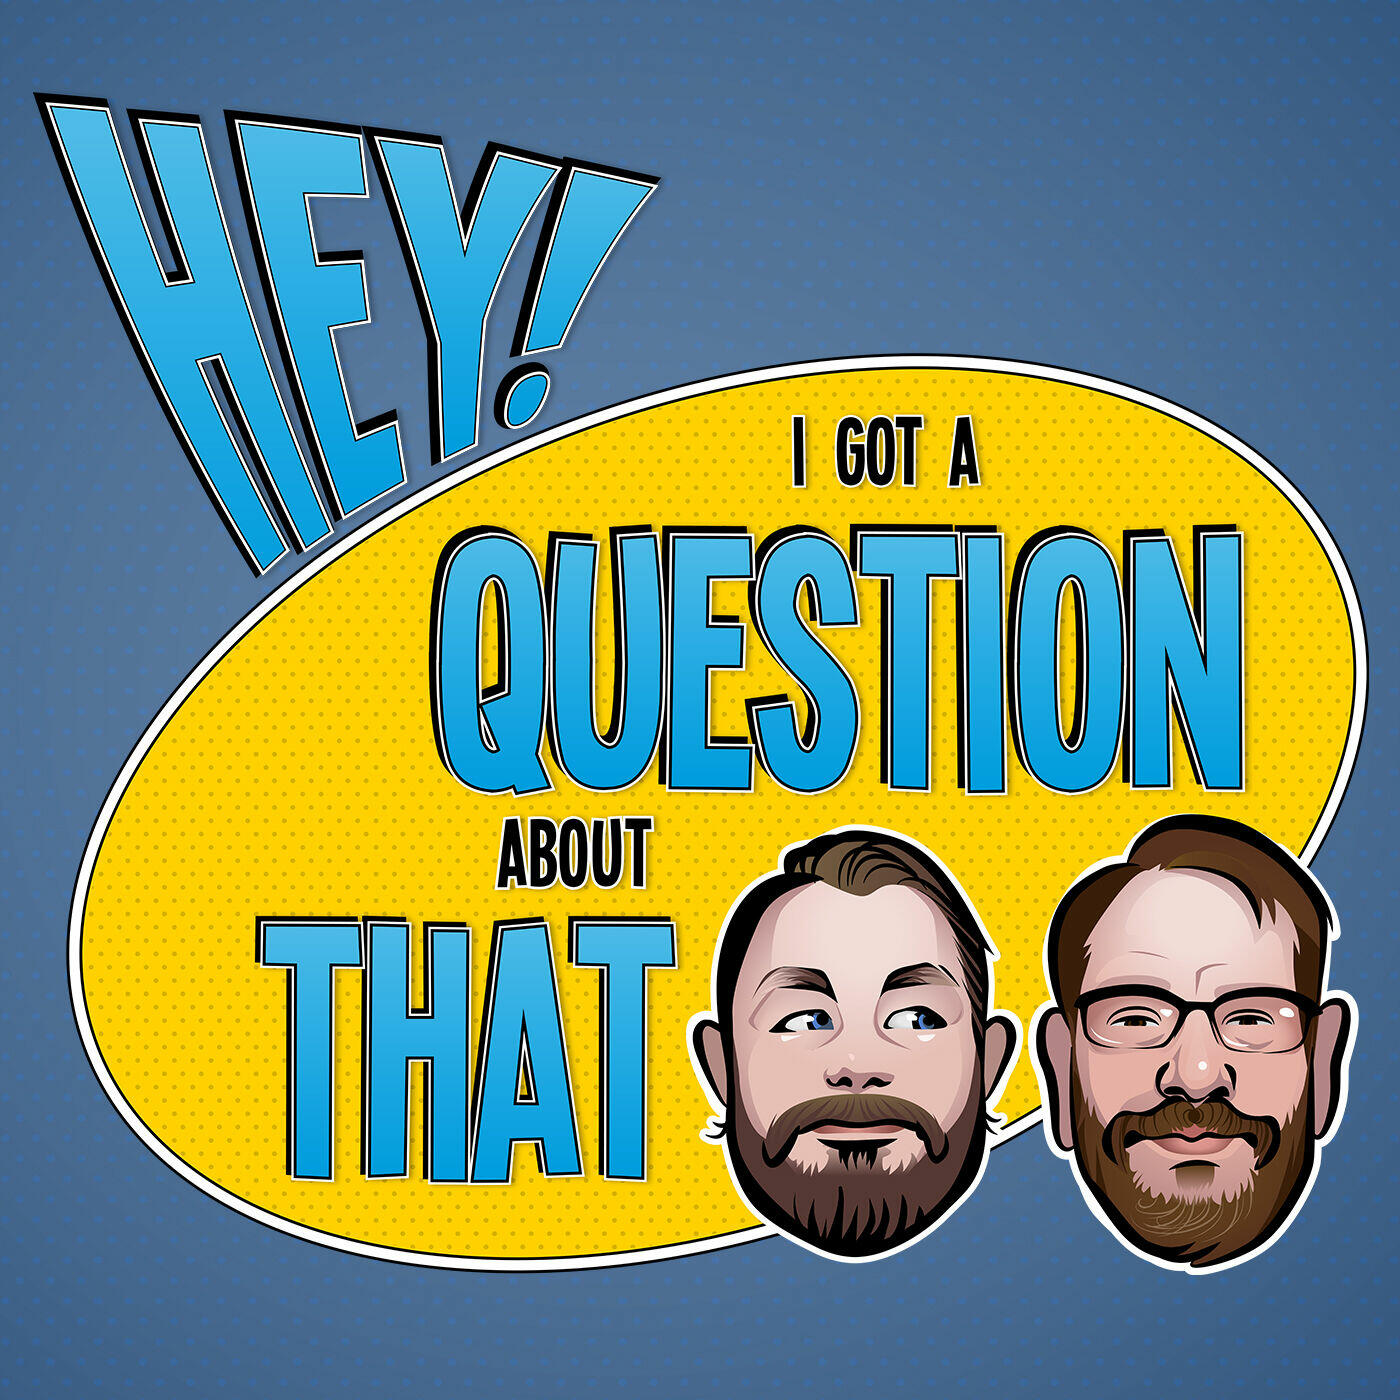 Hey! I Got a Question About That